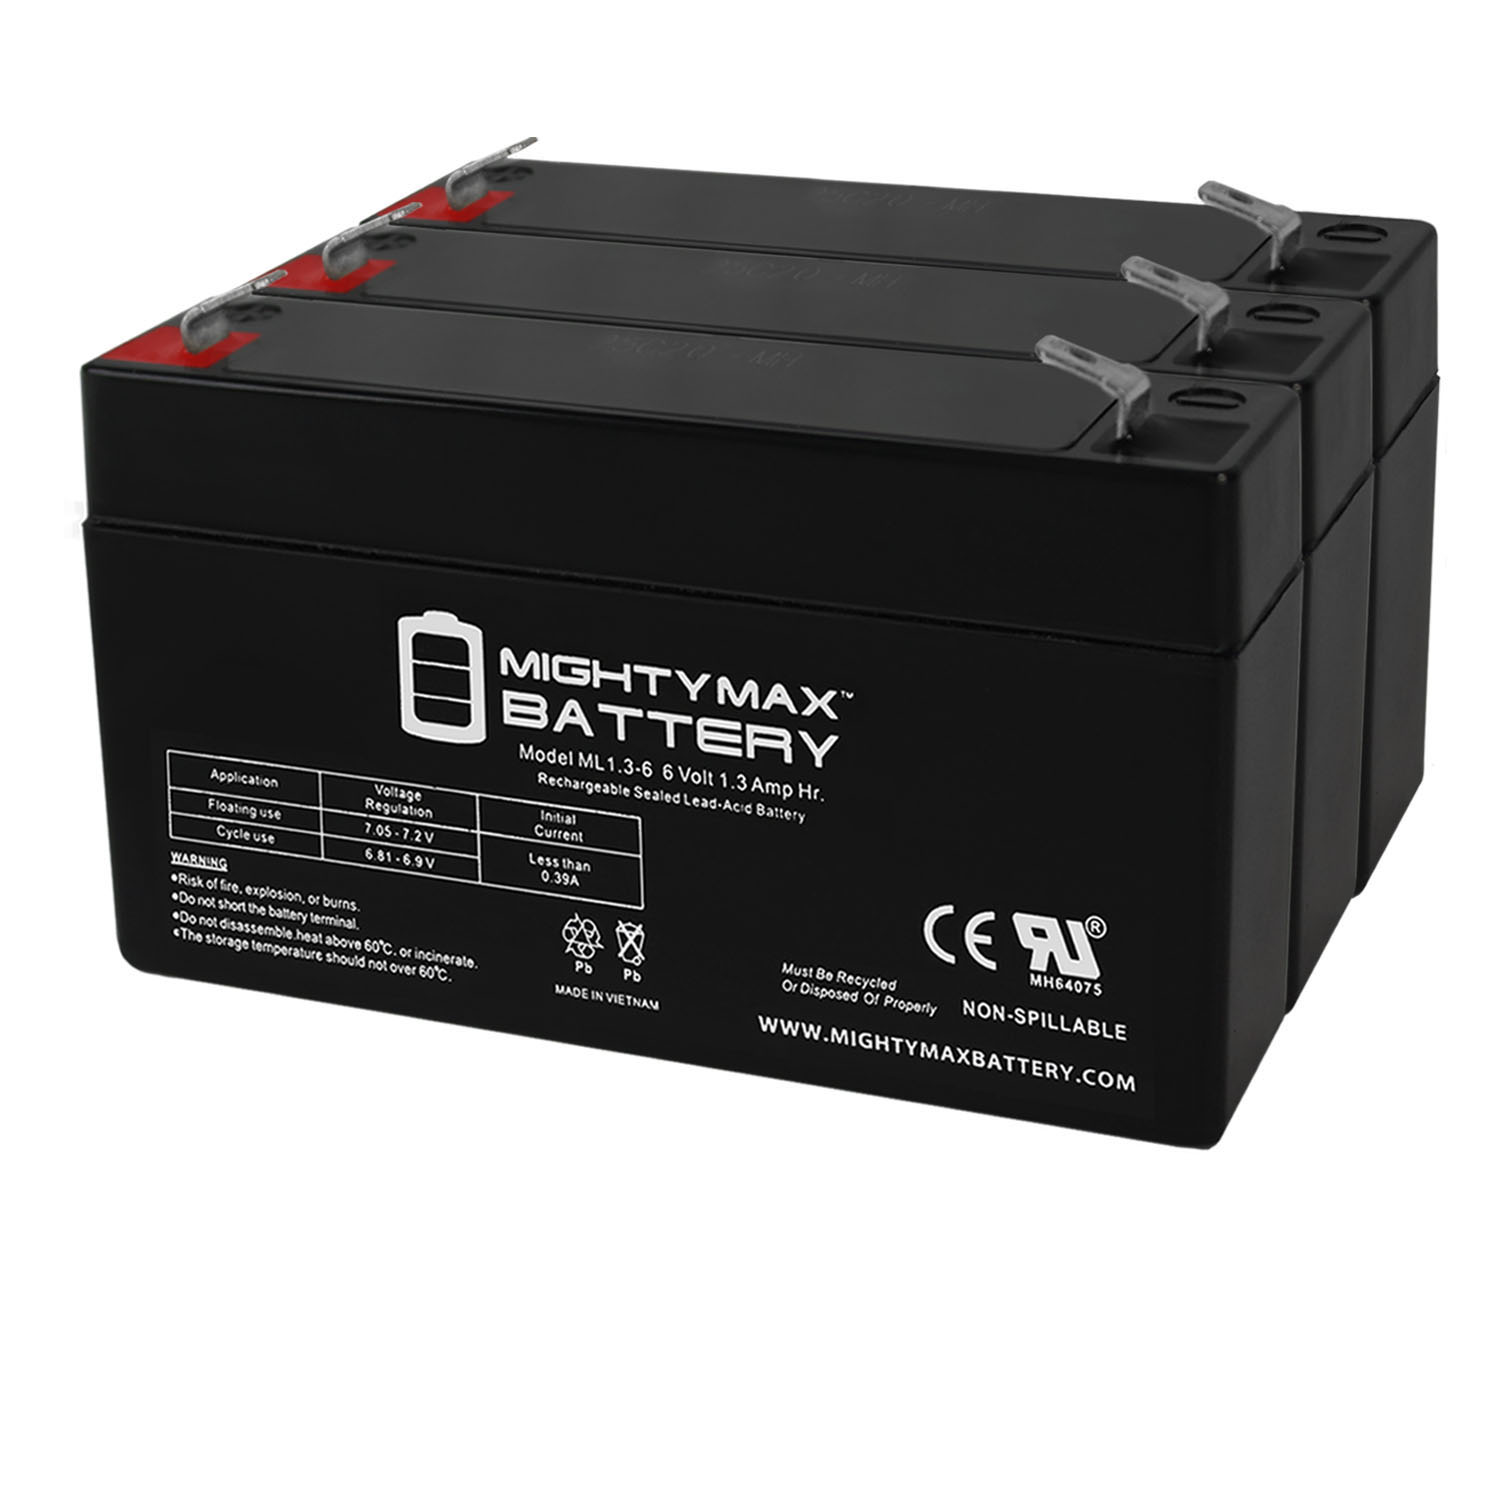 Replacement for PE6V1.2 Replacement Battery - 3 Pack